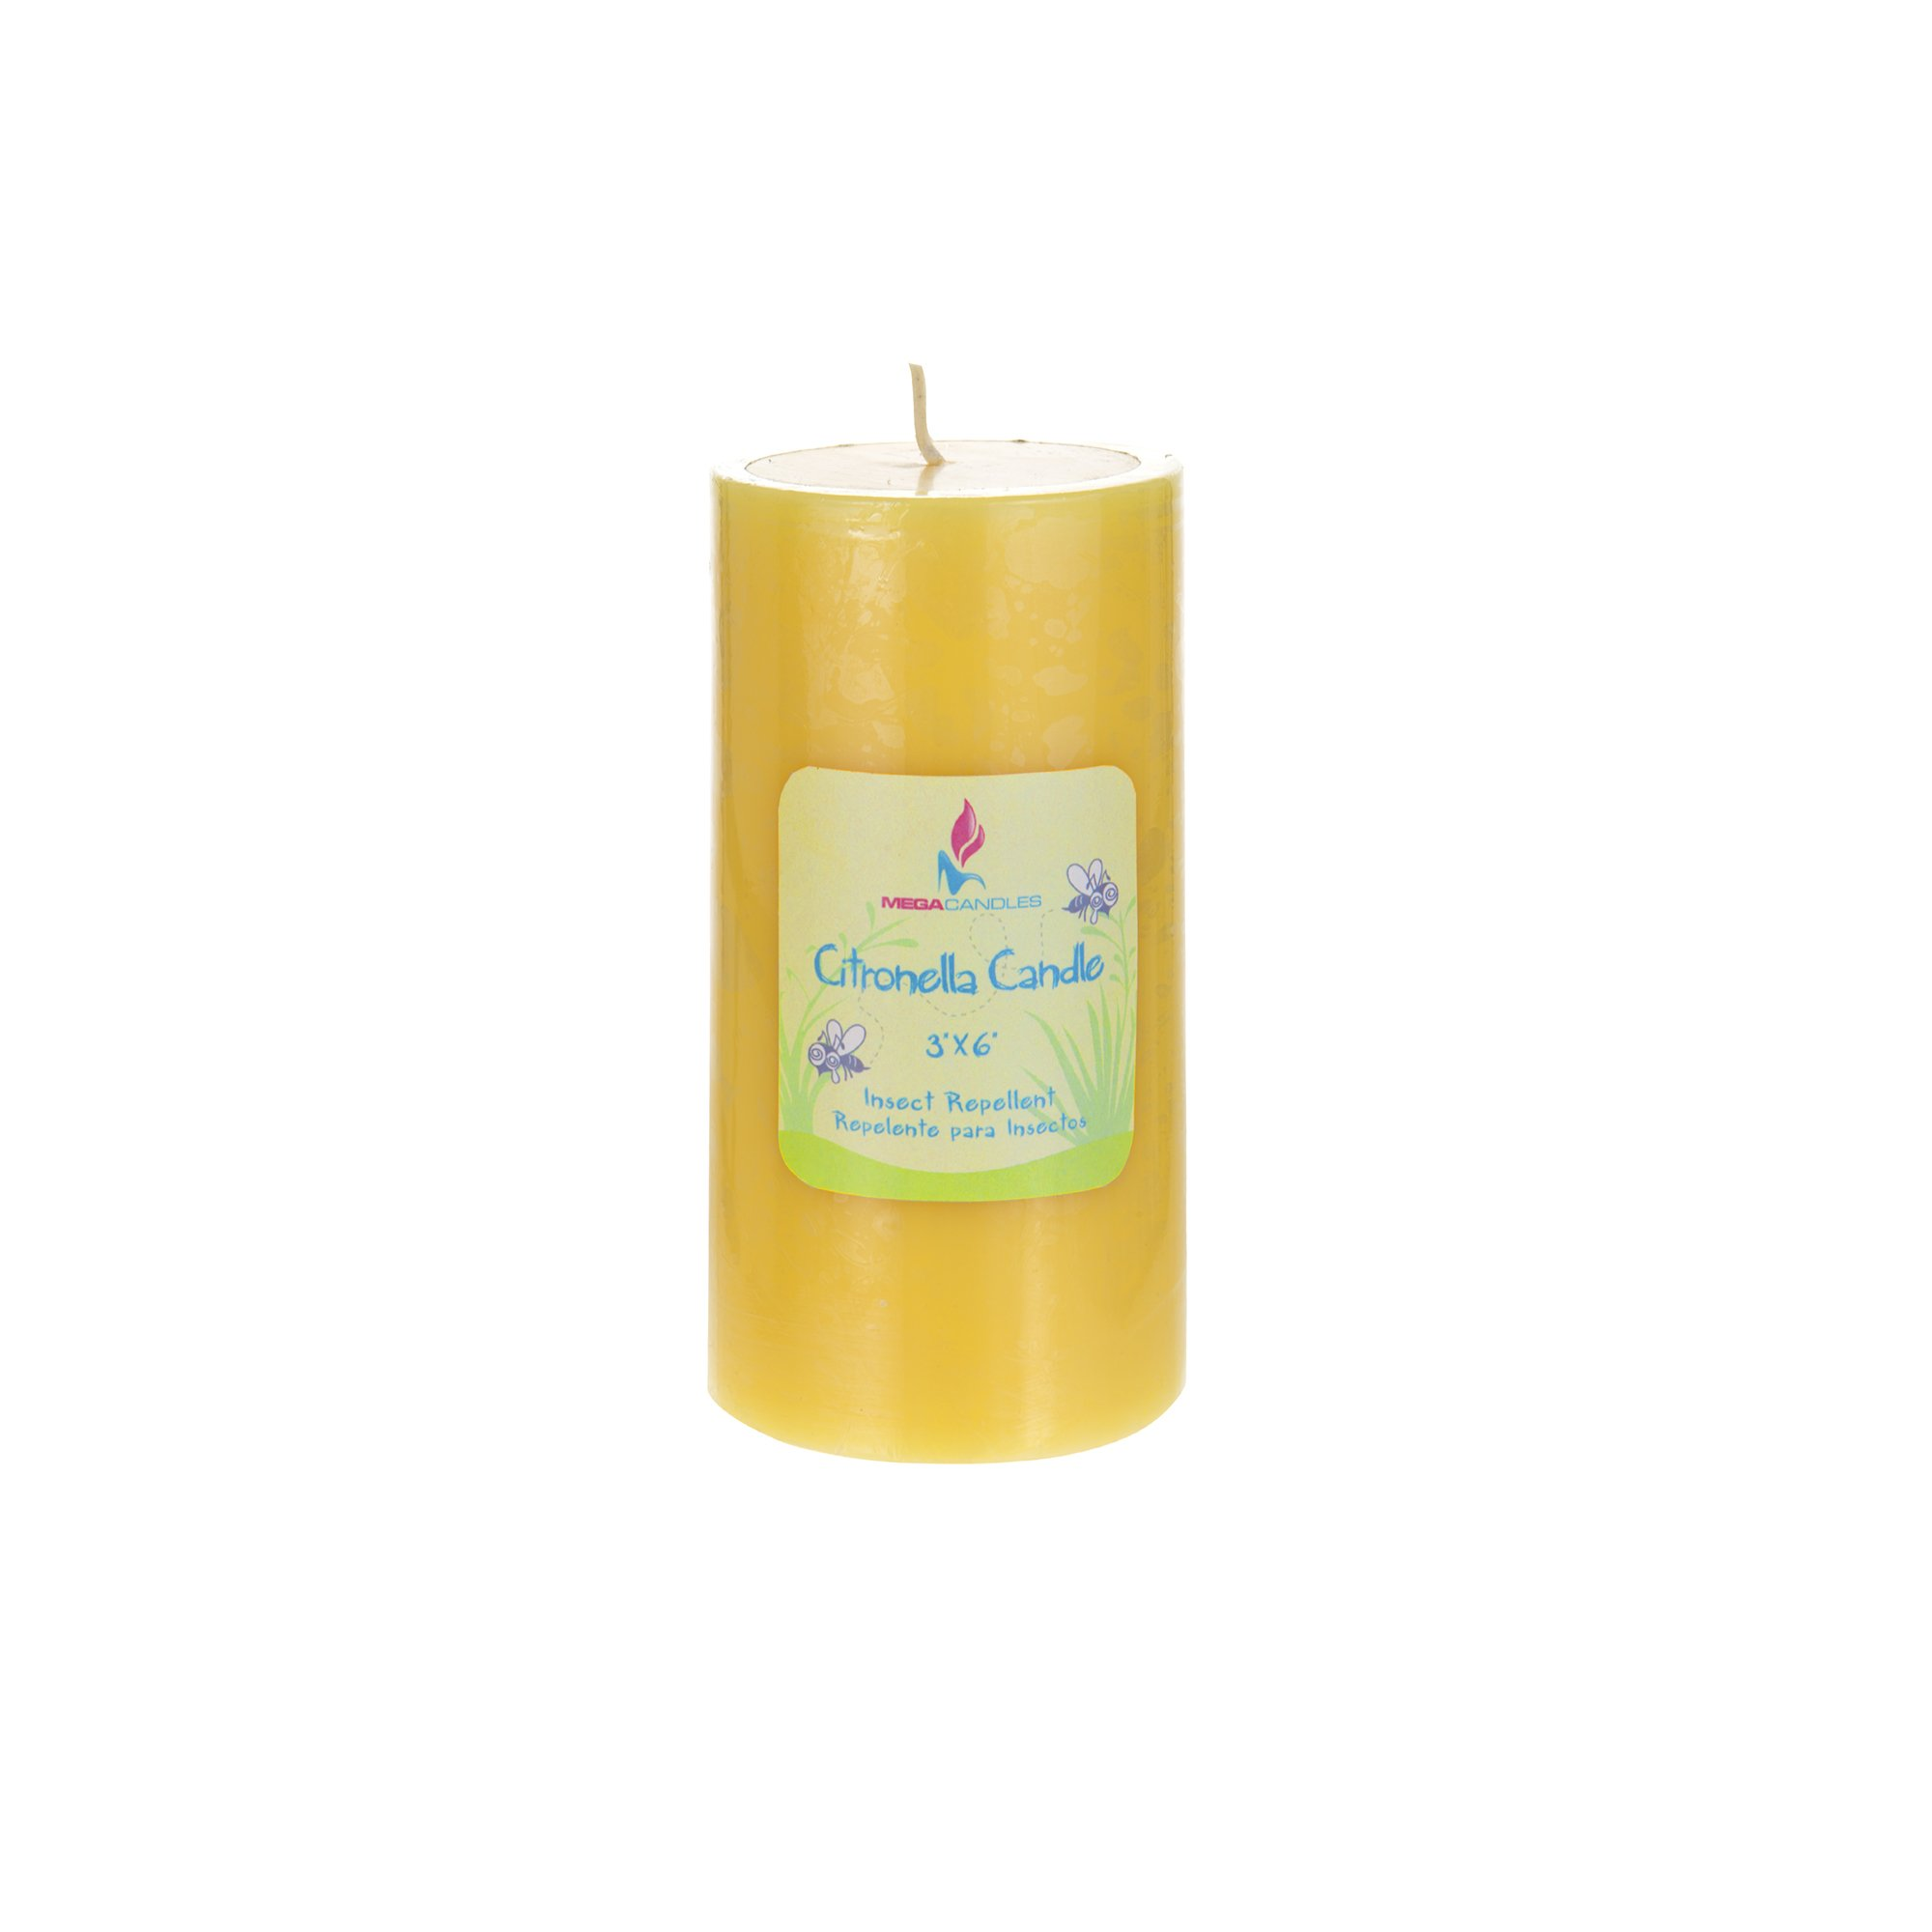 Mega Candles 1 pcs Citronella Round Pillar Candle | Hand Poured Paraffin Wax Candles 3'' x 6'' | Bug Repellent Candles For Indoor And Outdoor Use | Everyday Candles For Mosquitoes And Insects